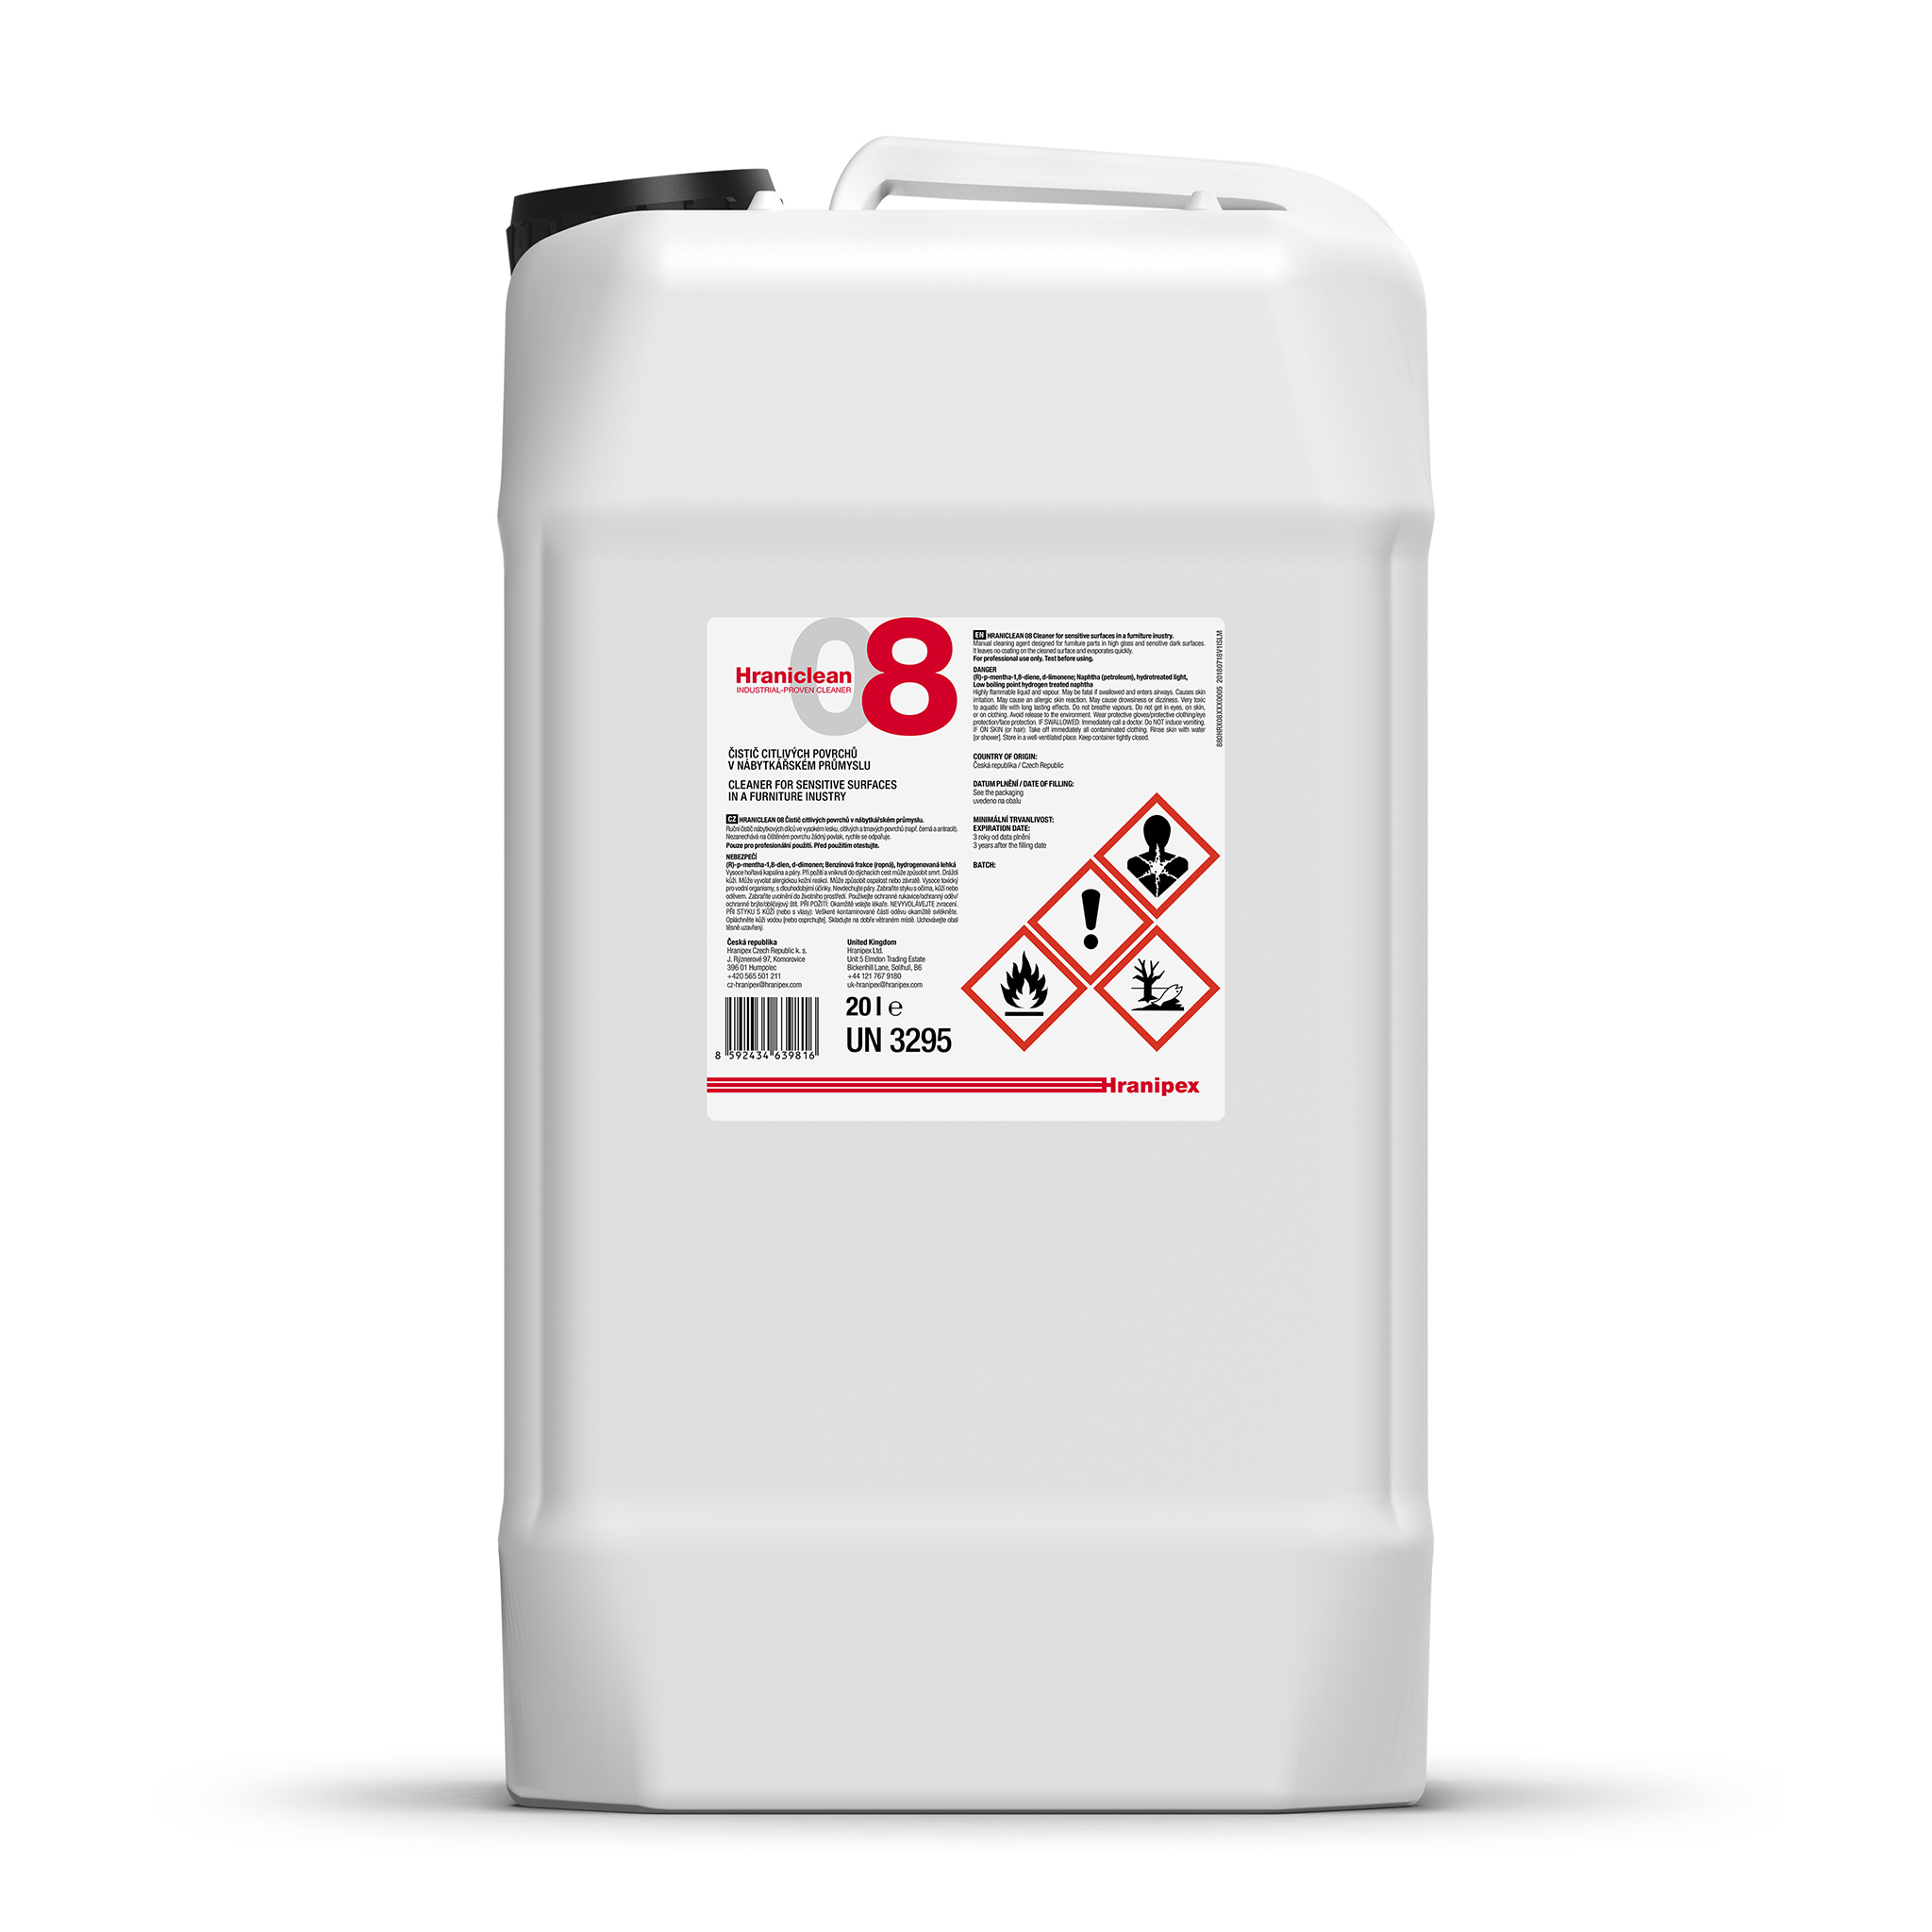 HRANICLEAN 08 Cleaning Agent for Sensitive Surfaces 20 l